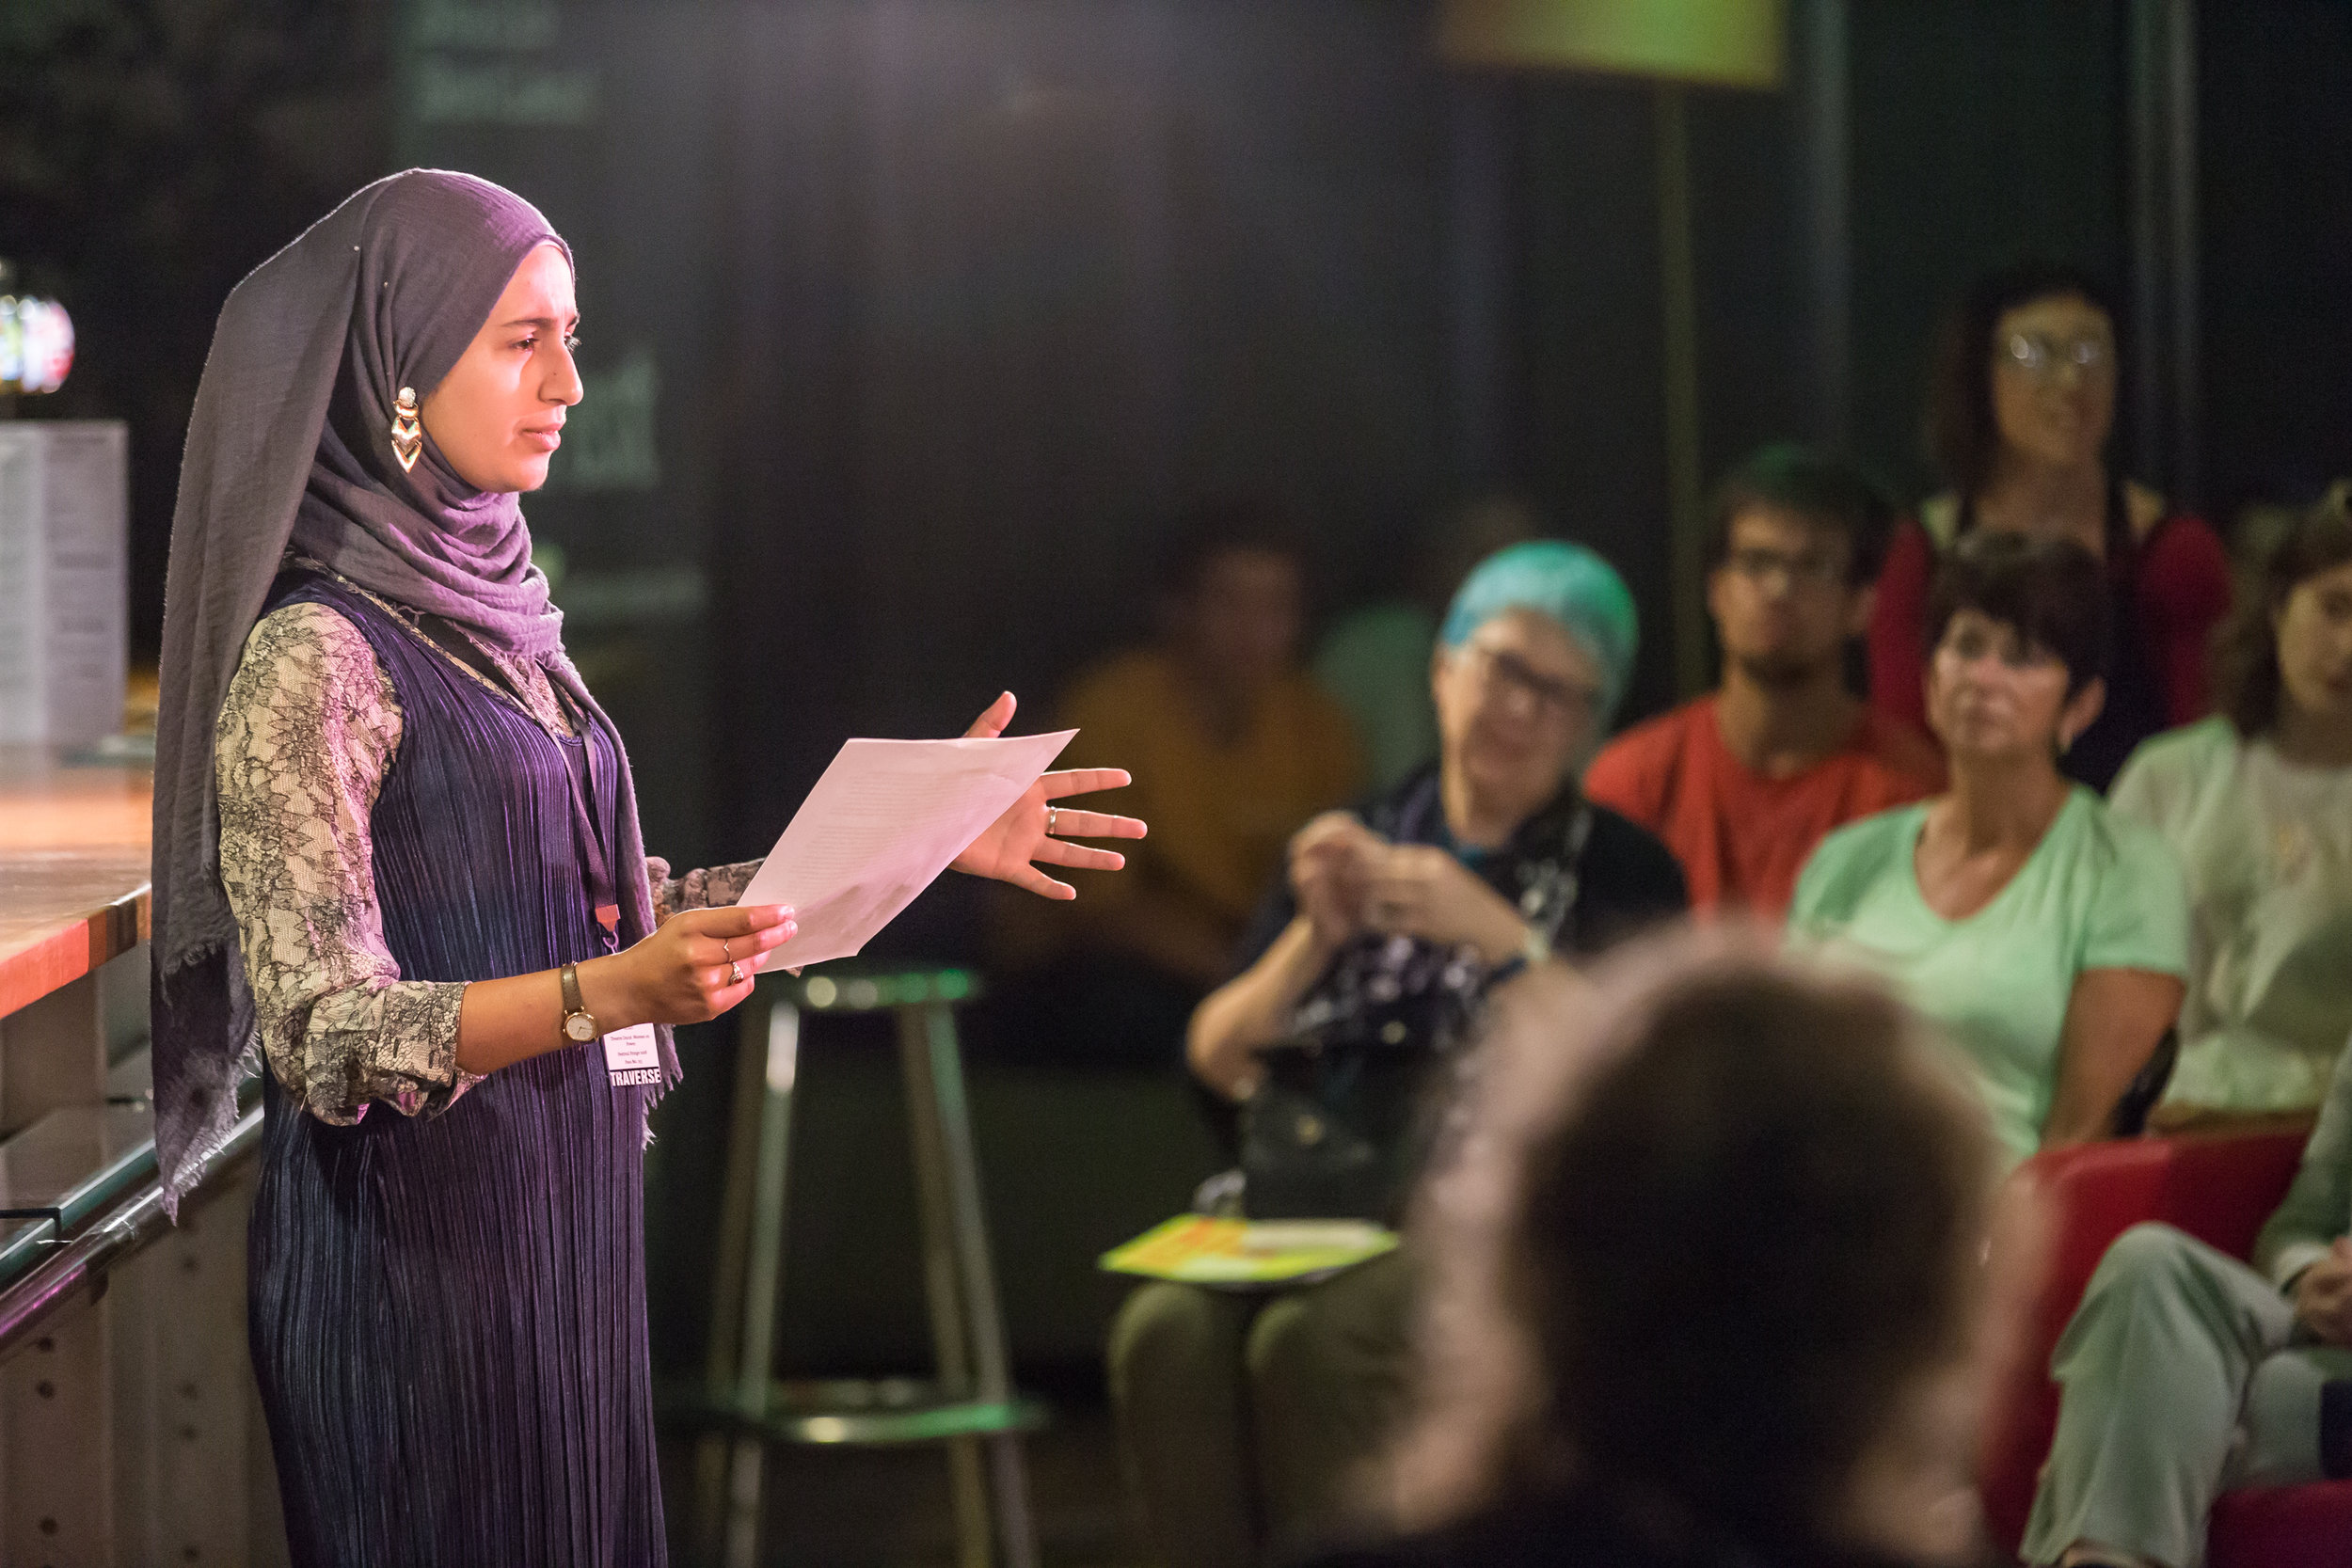 THEATRE UNCUT POLITICAL PLAYWRITING AWARD SHORTLIST ANNOUNCEMENT - In partnership with the Young Vic, Traverse Theatre and Sherman Theatre. Finding the next generation of political playwrights that want to explore the big issues that affect our lives today.Image: Suhaiymah Manzoor Khan. Credit Chris Scott.